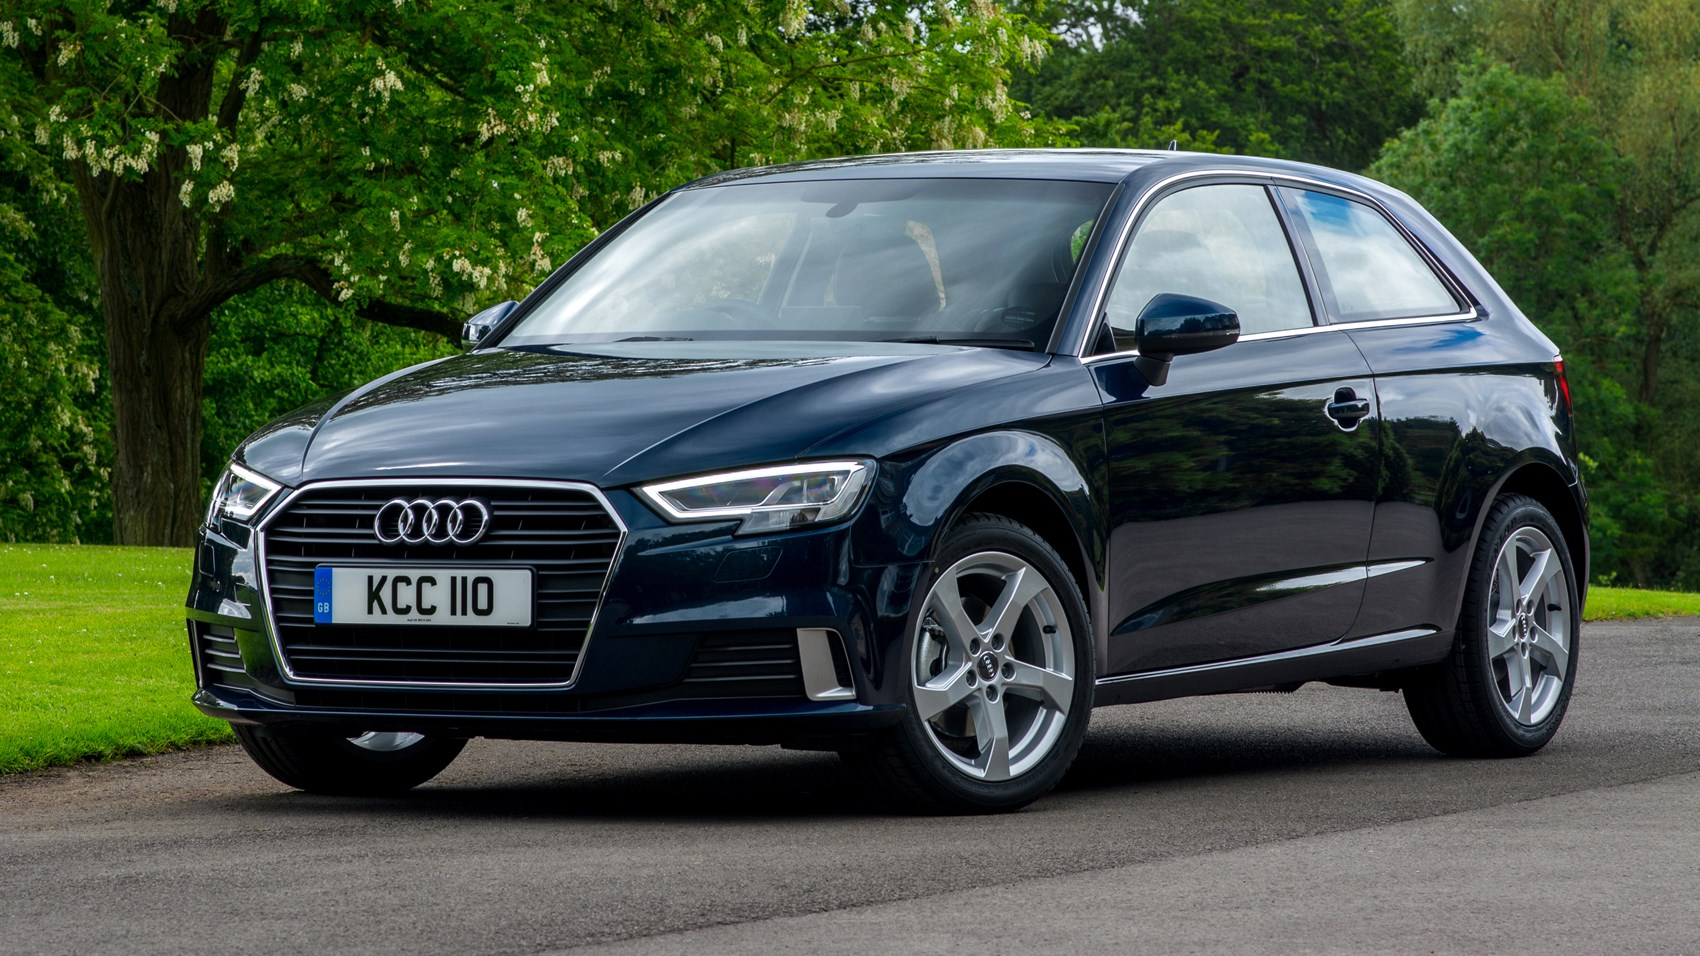 audi a3 2016 1 4 tfsi s line review by car magazine. Black Bedroom Furniture Sets. Home Design Ideas